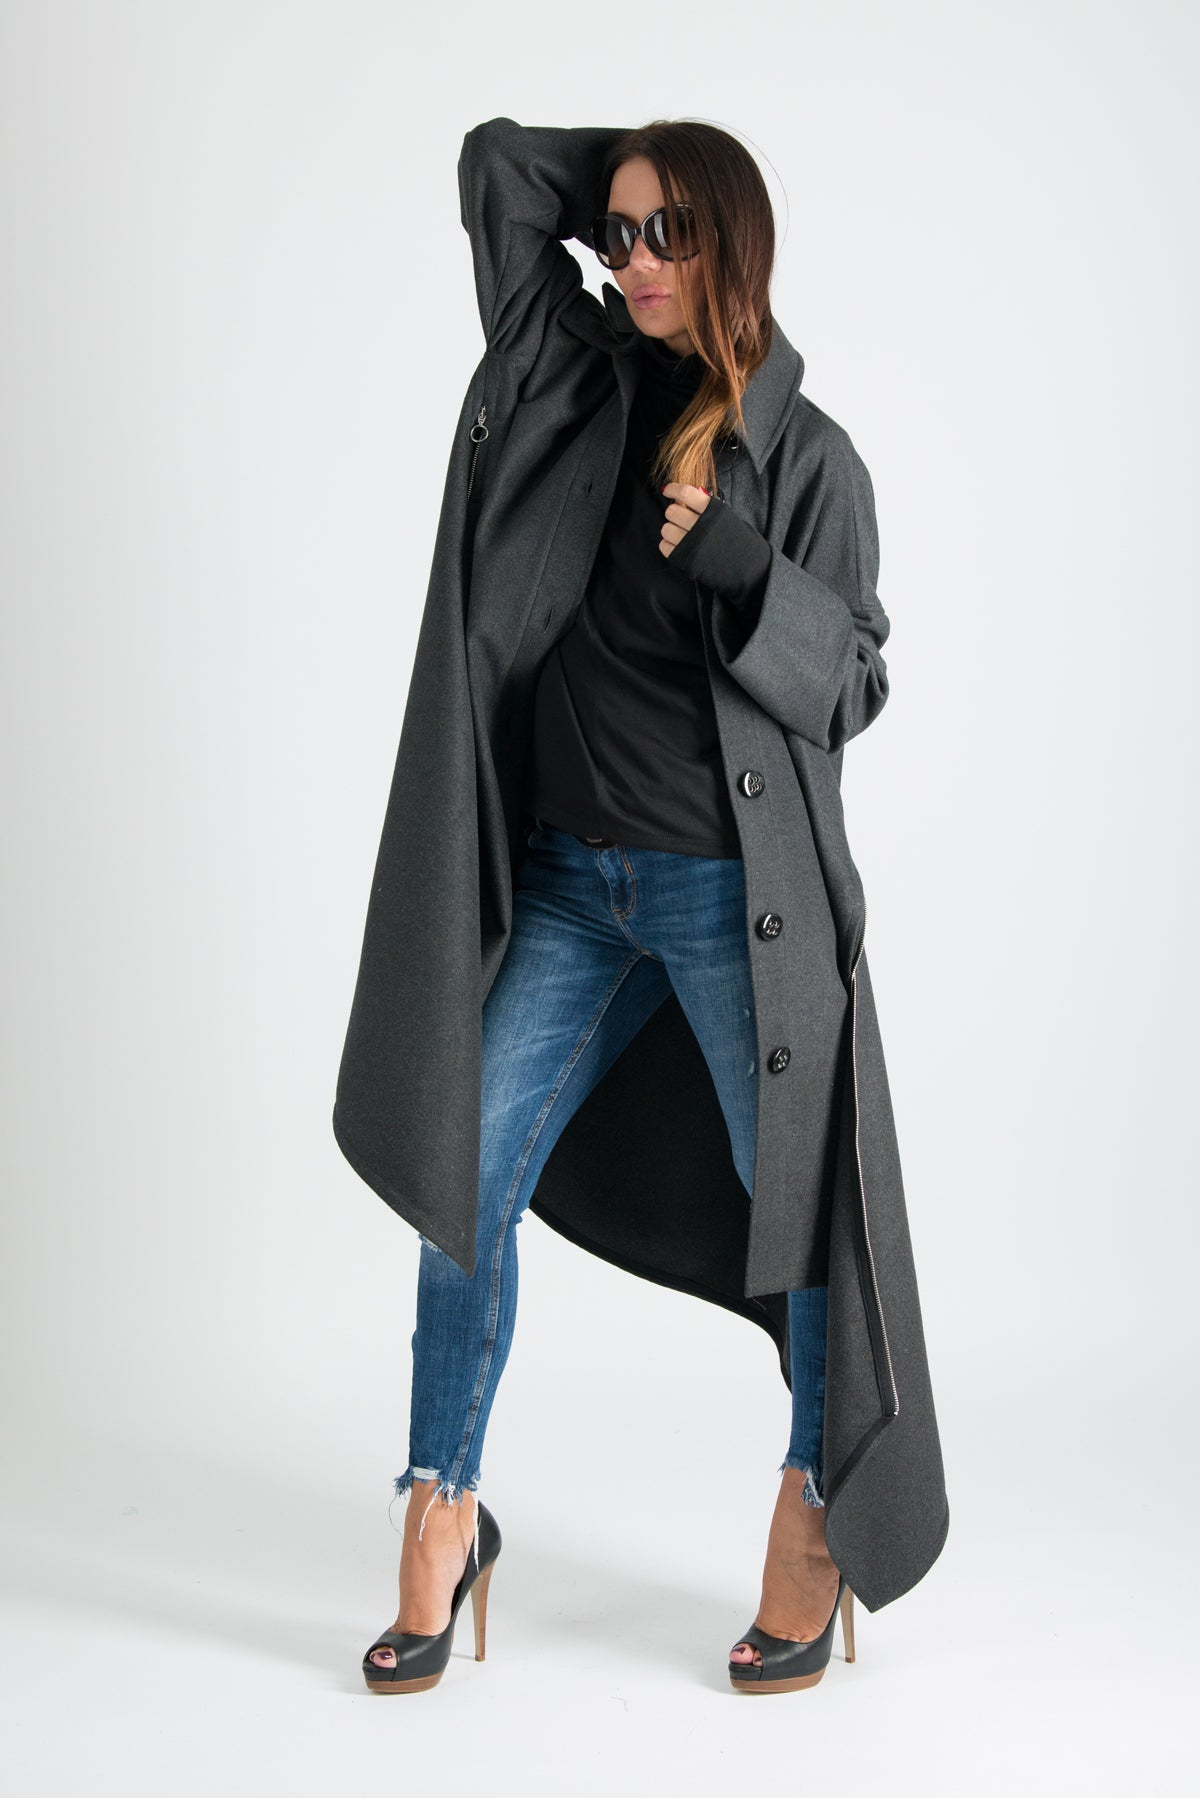 Dark grey Winter women Coat, Cashmere Coat